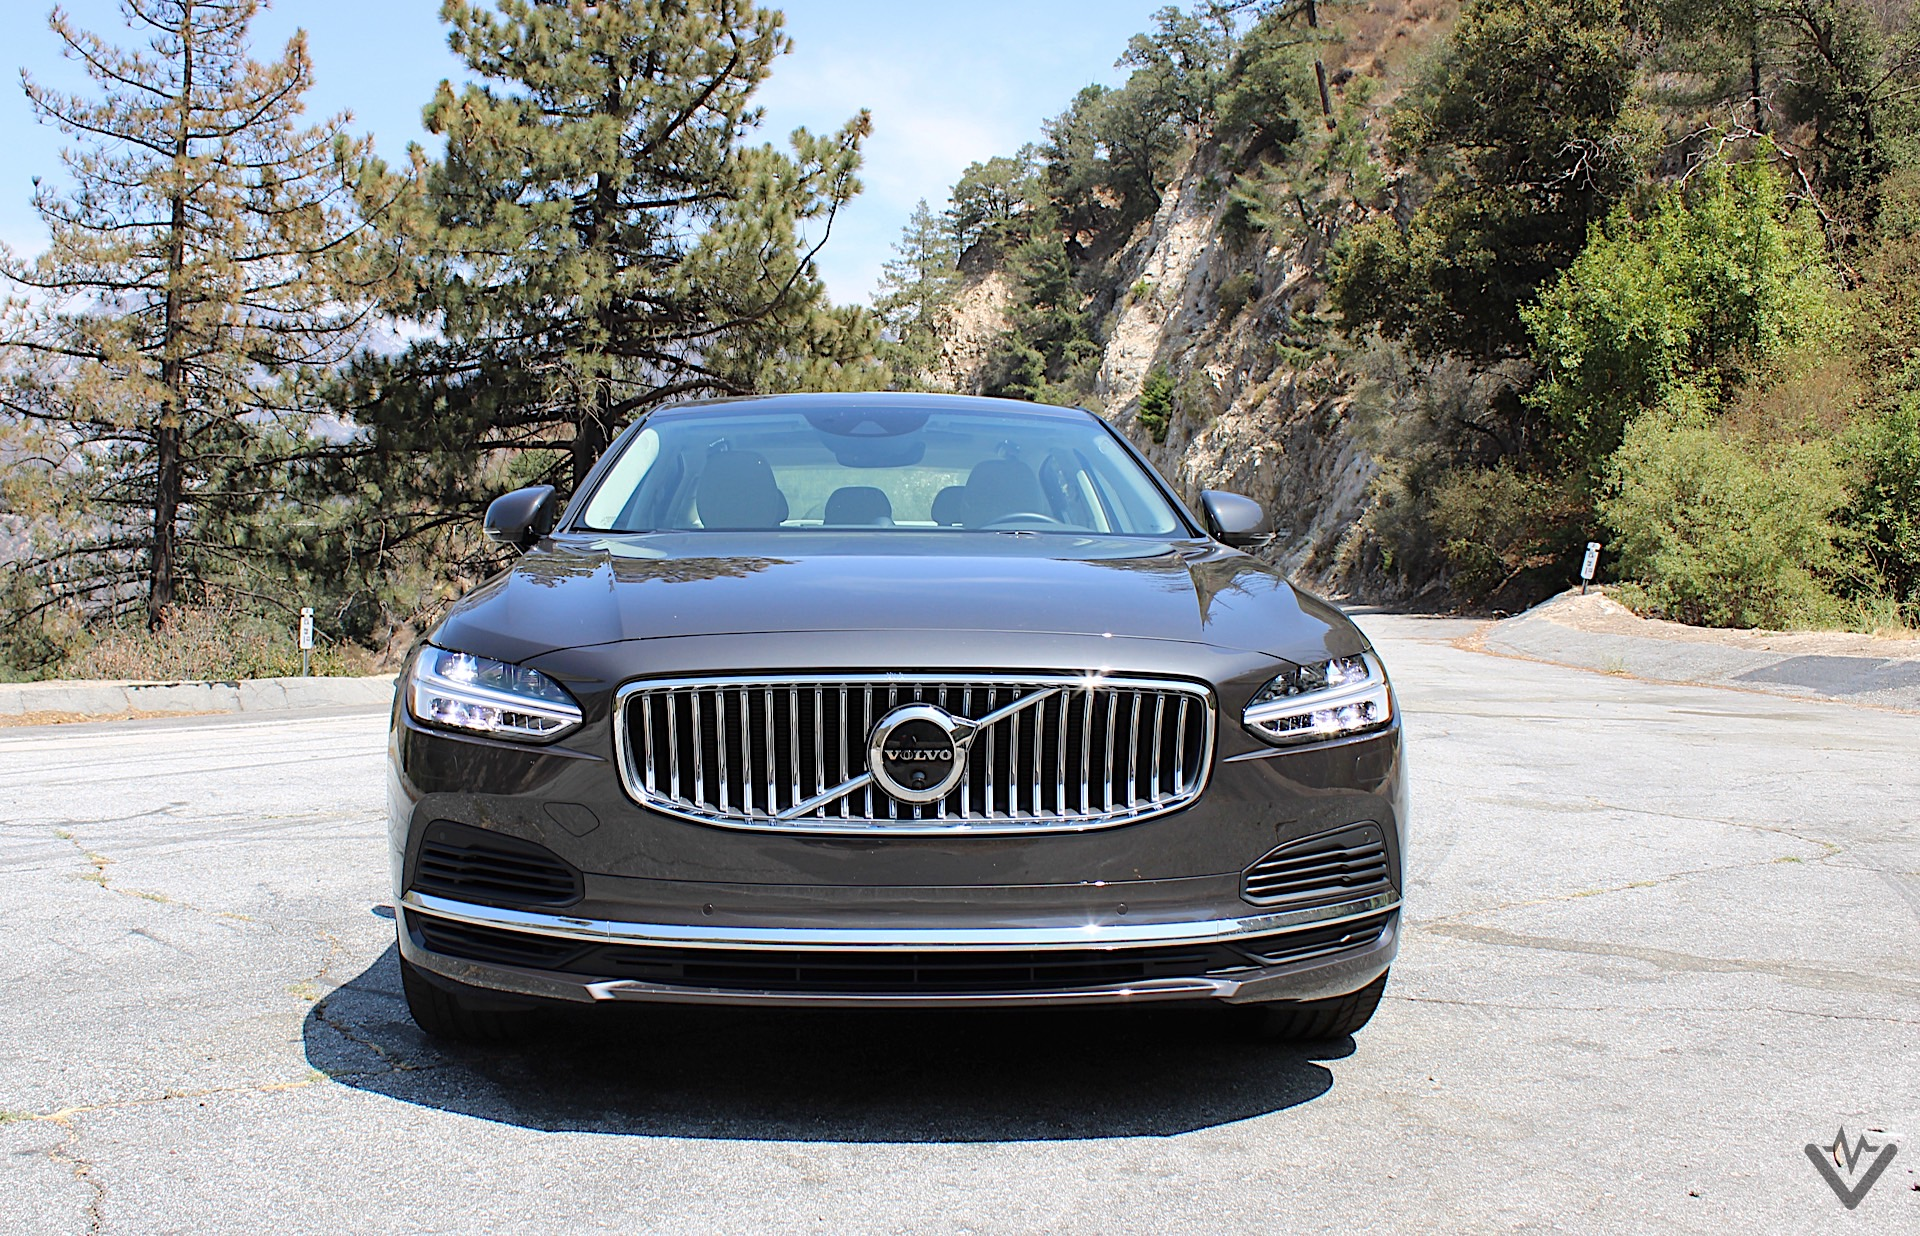 2021 Volvo S90 T8 Recharge front 01 1